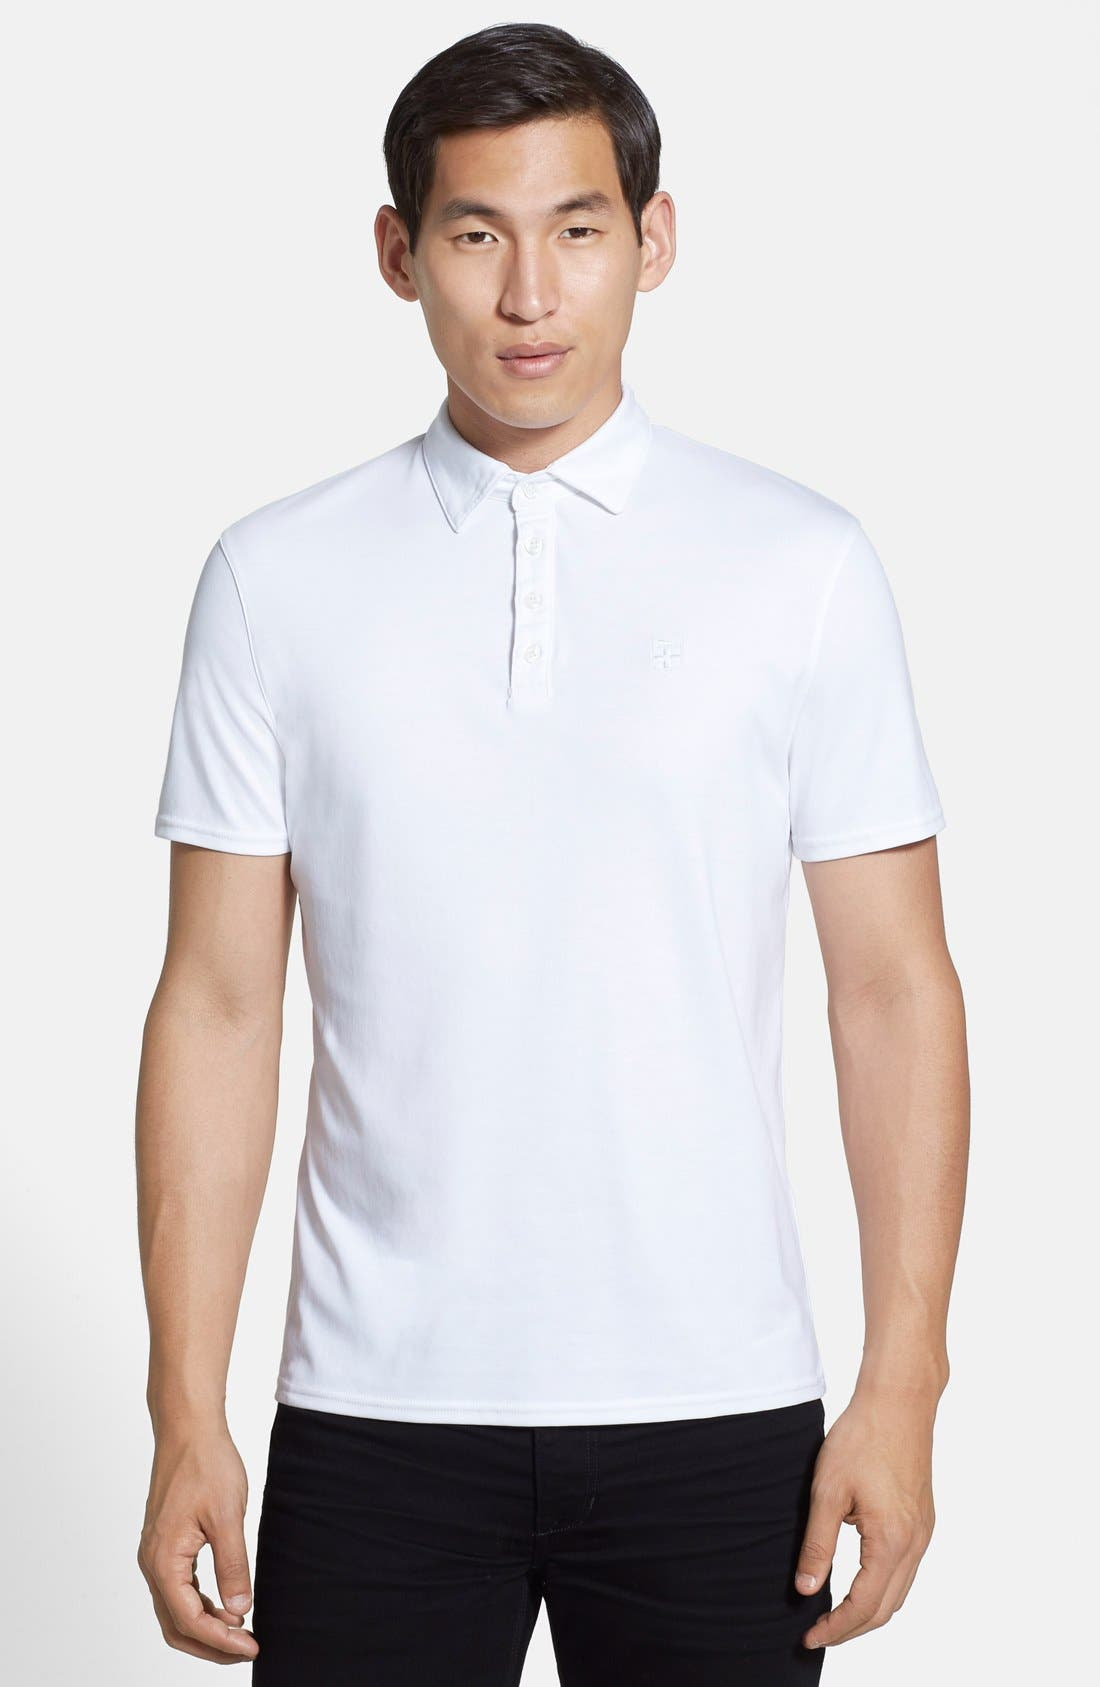 Alternate Image 1 Selected - Vince Camuto 'Crest' Slim Fit Polo